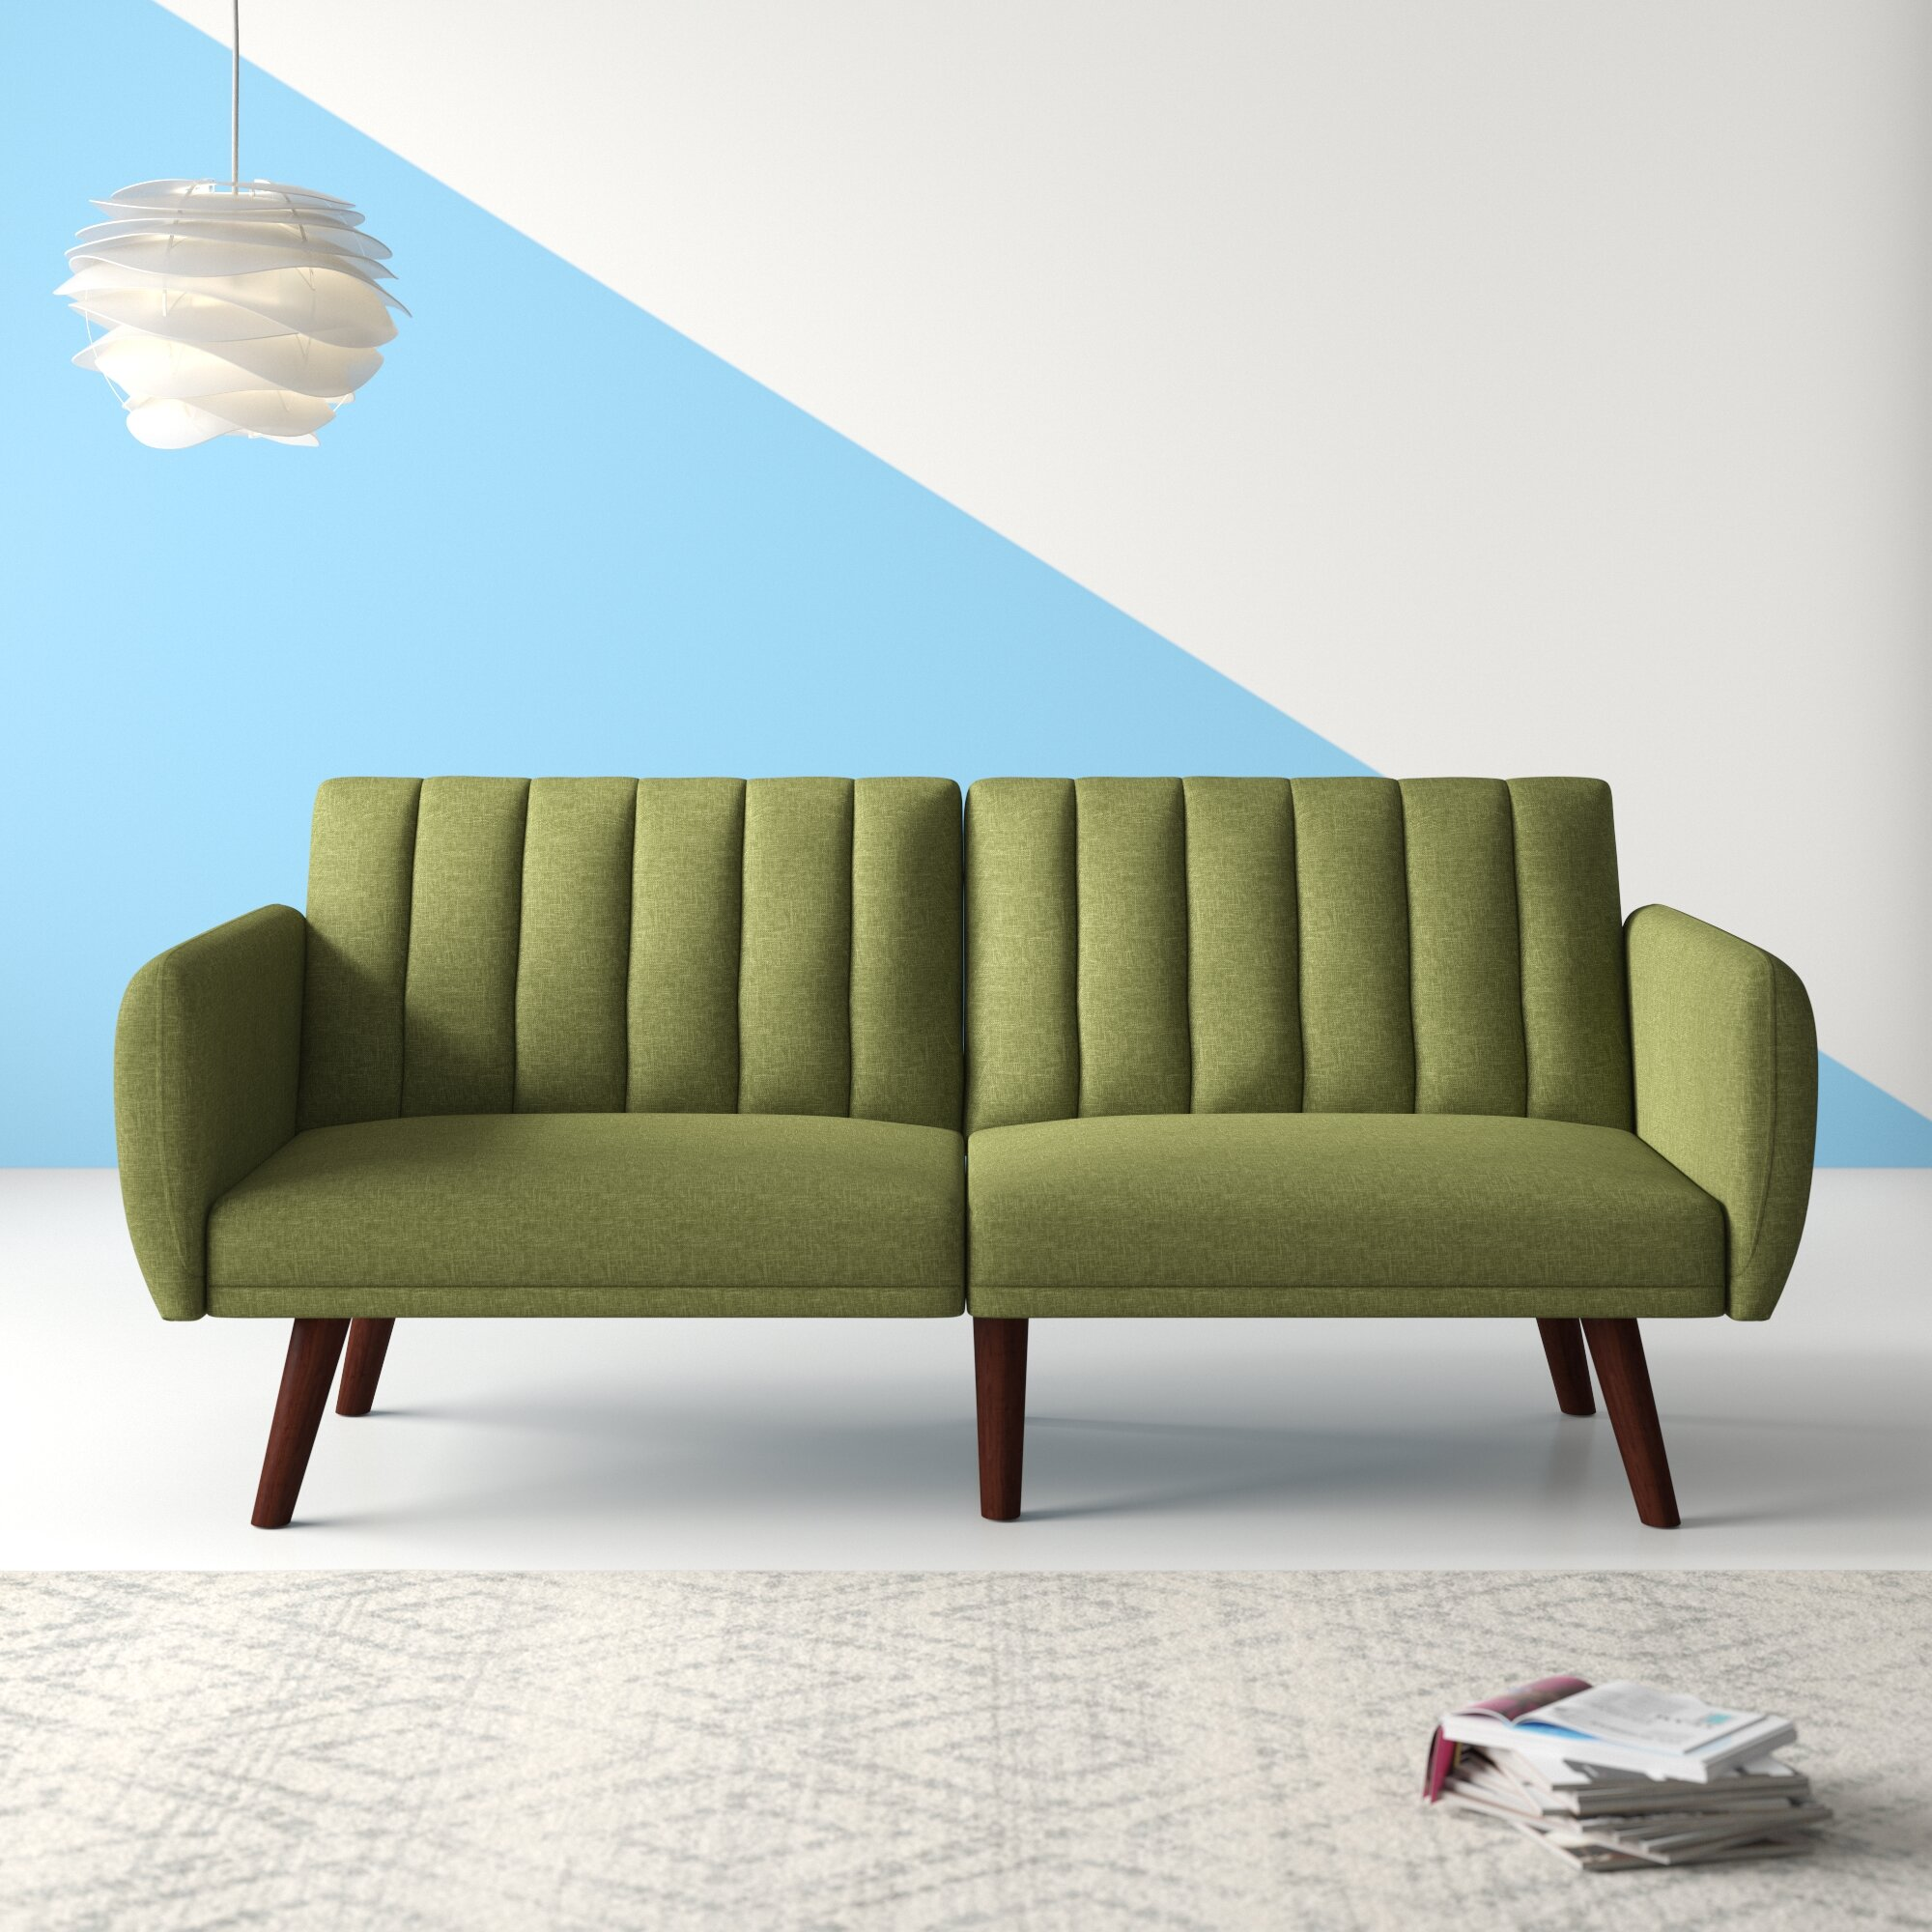 Sensational Fynn Sofa Bed Caraccident5 Cool Chair Designs And Ideas Caraccident5Info